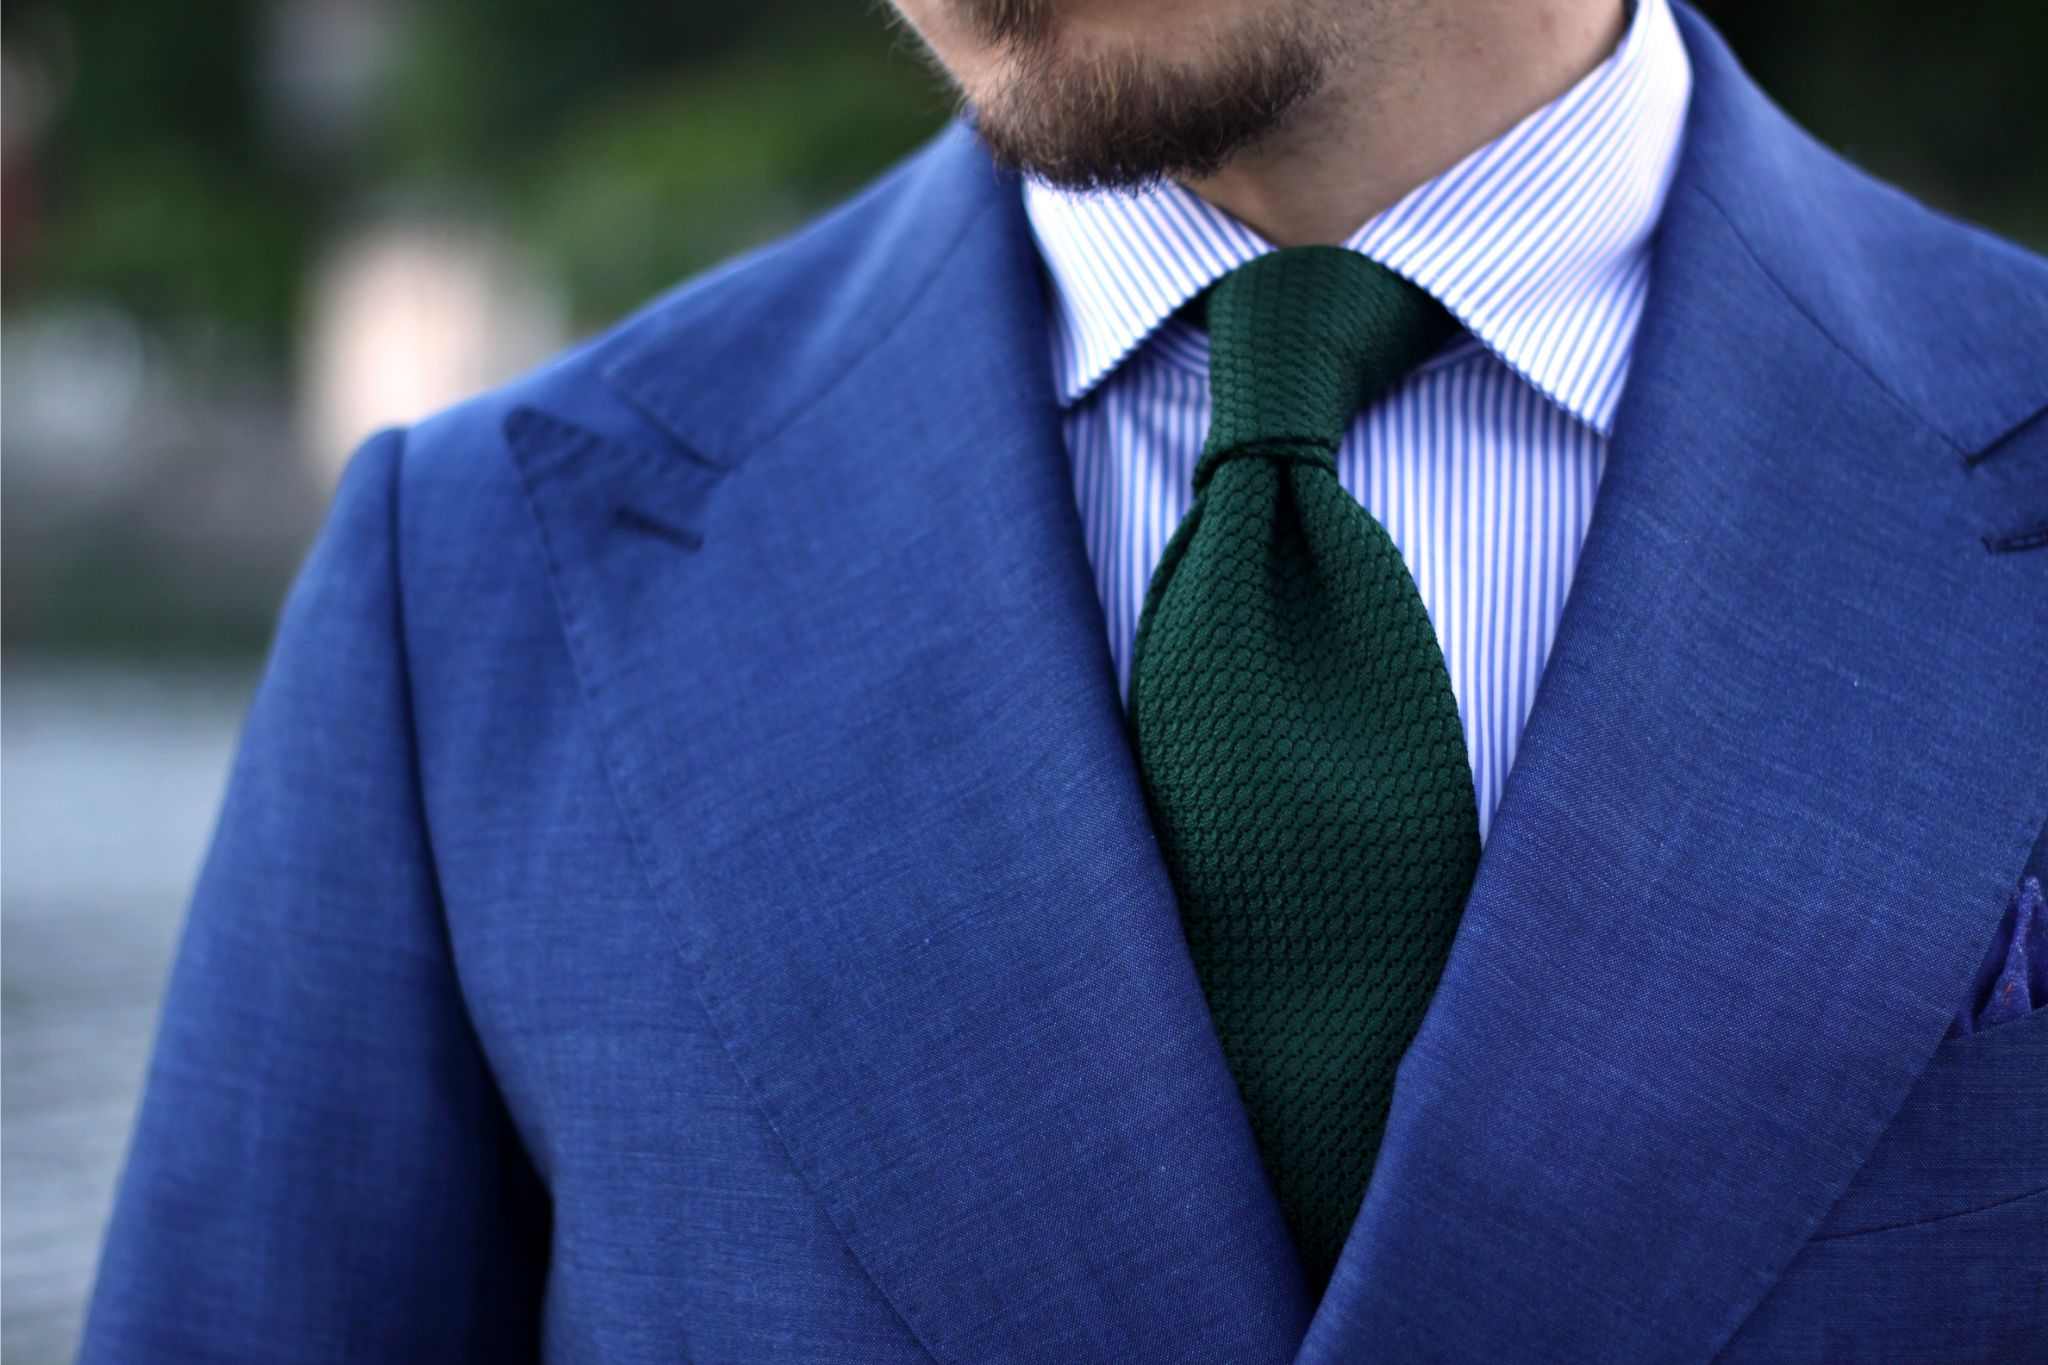 Royal blue suit with bottle green grenadine tie